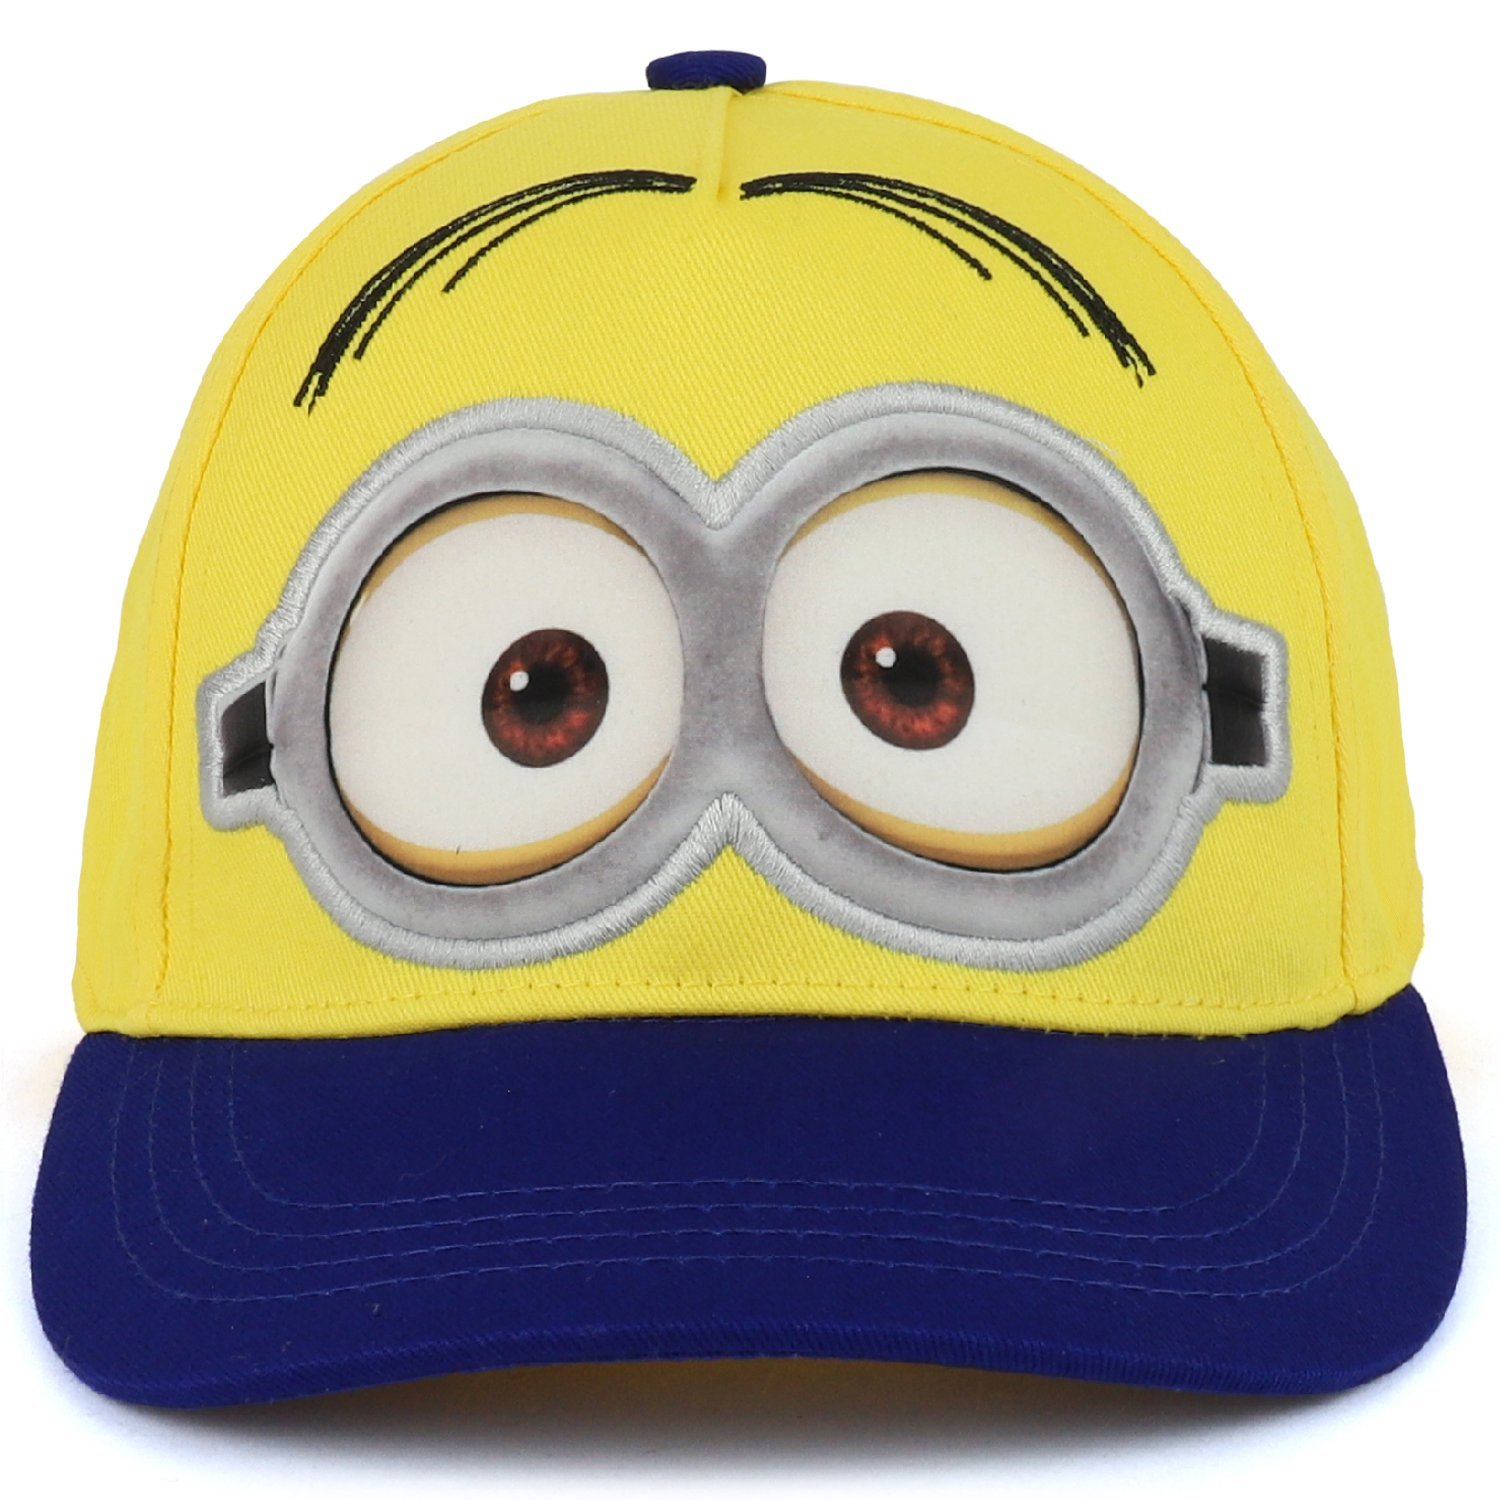 Trendy Apparel Shop Boys Kid's Despicable Me Minions Bob Blue Baseball Cap - Yellow by Trendy Apparel Shop (Image #2)